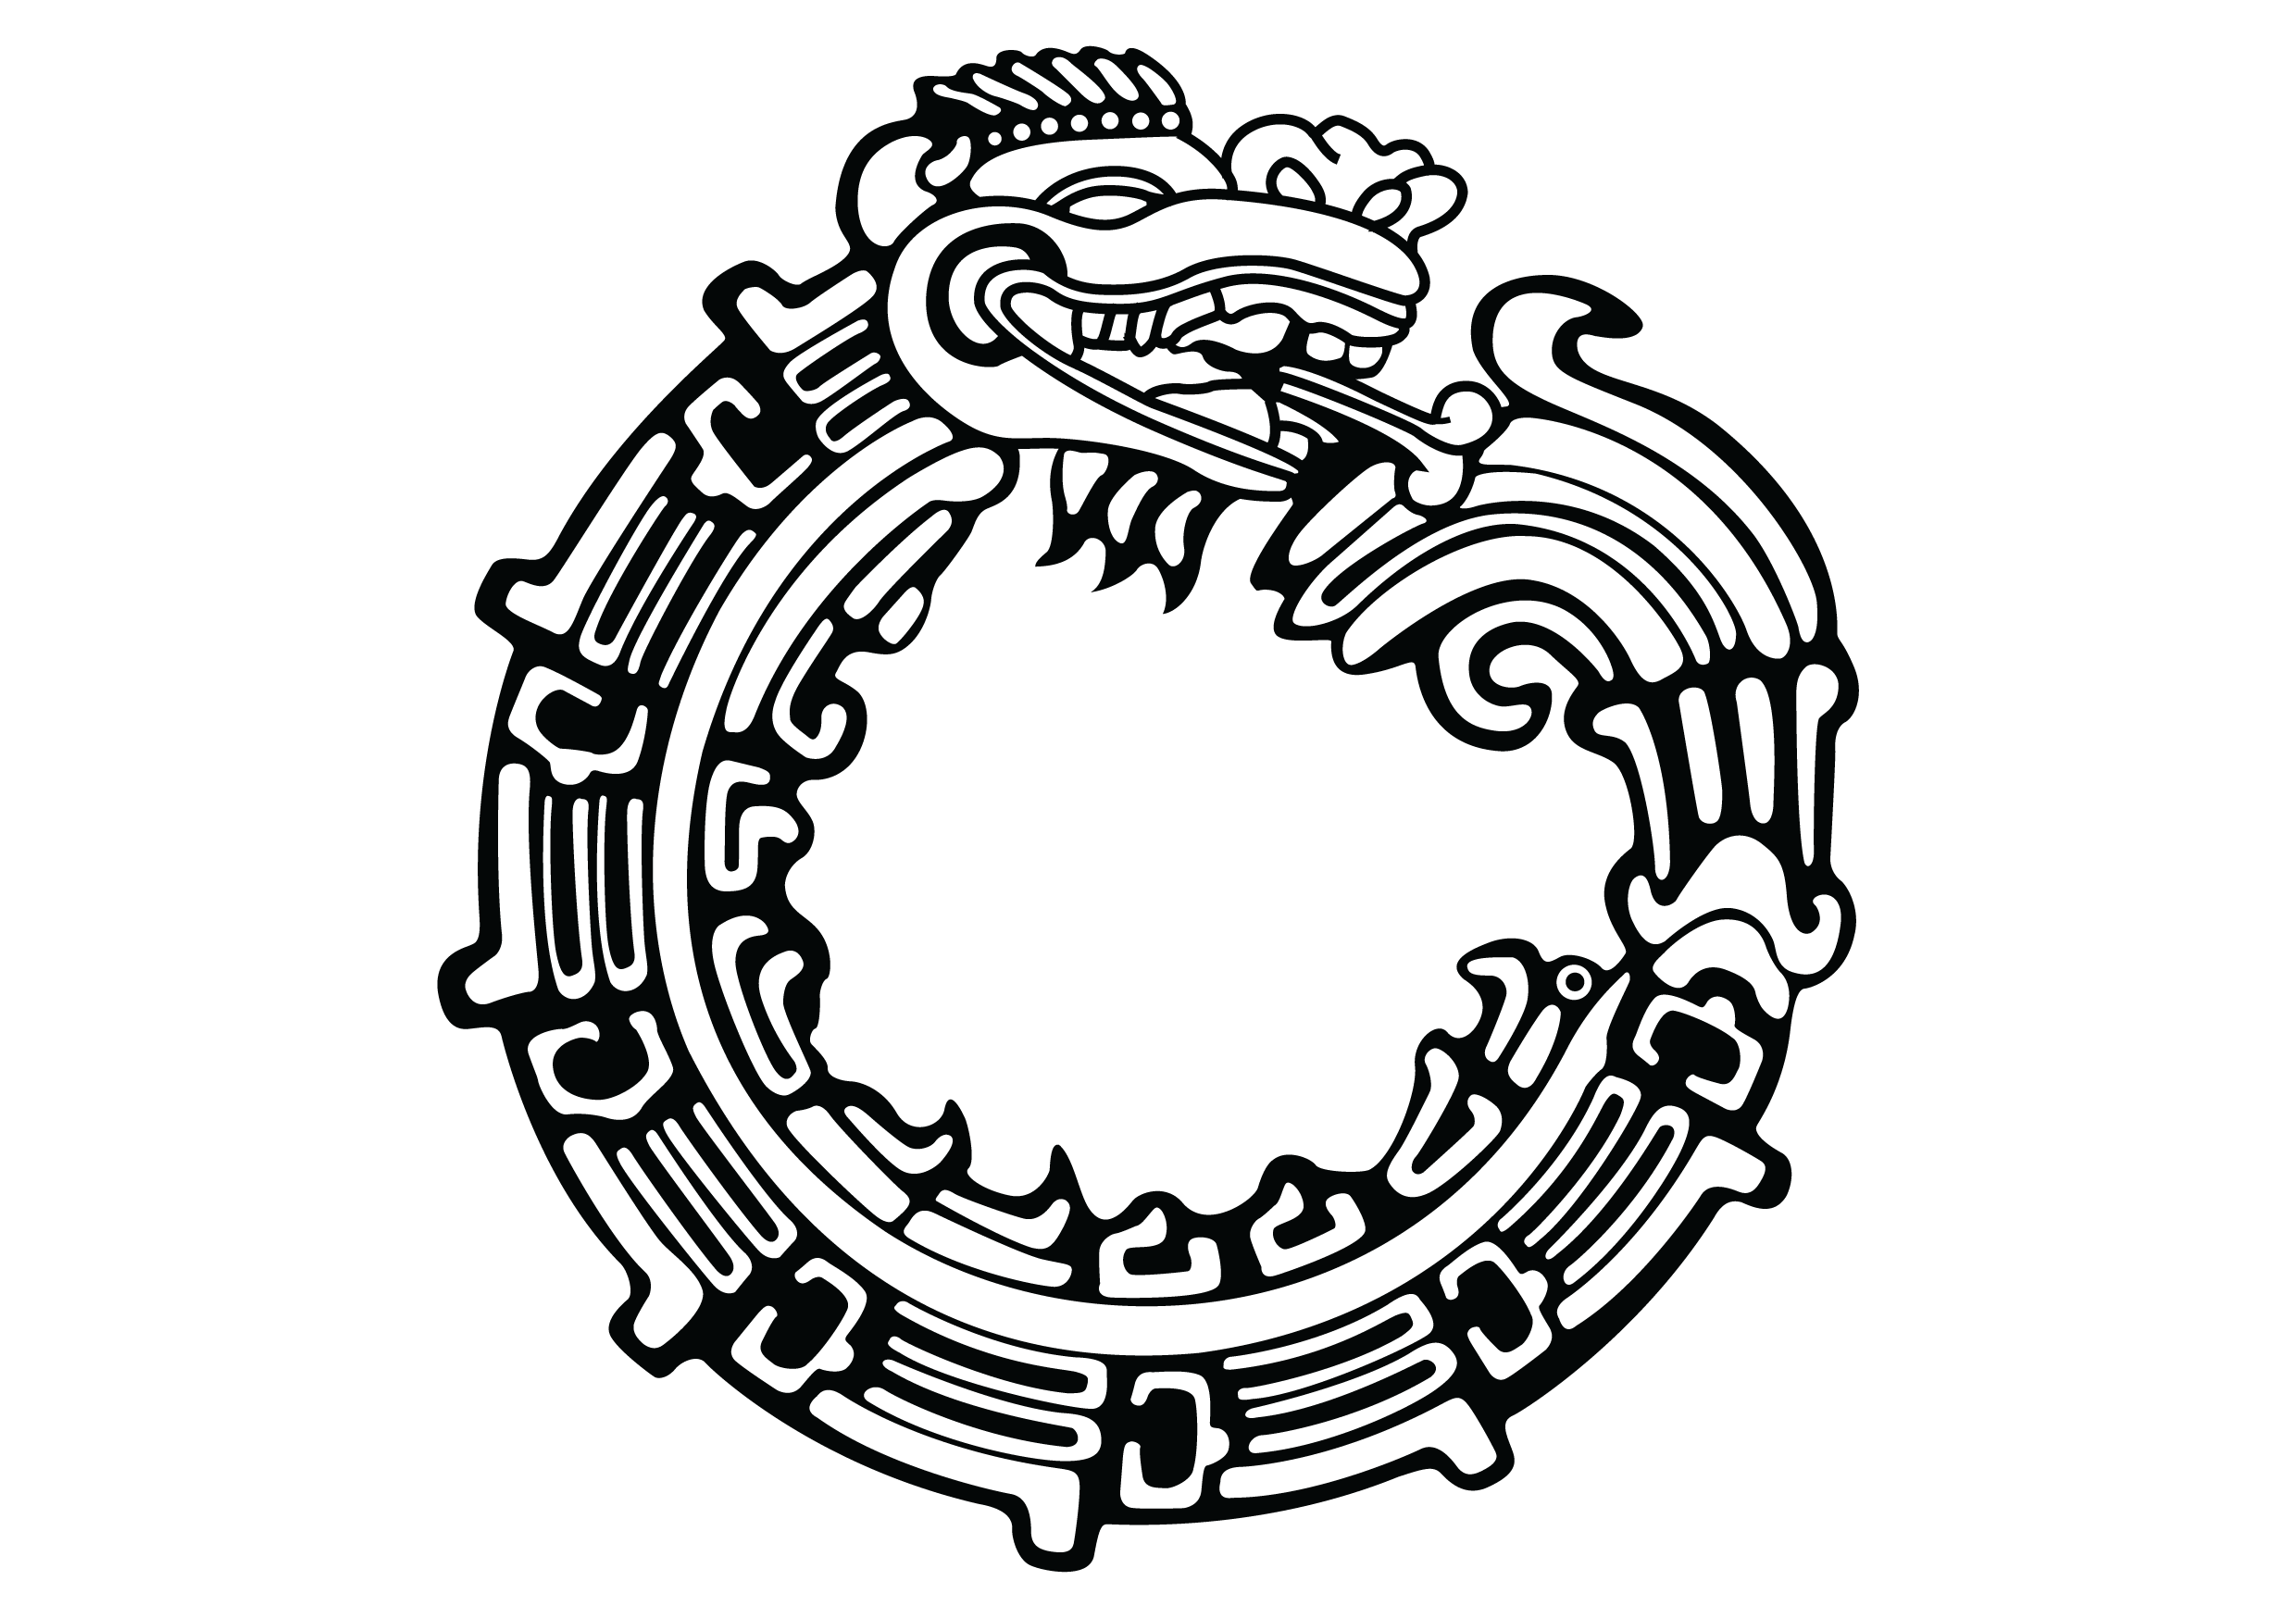 Aztec Serpent Drawings File:aztec Serpent Tattoo by